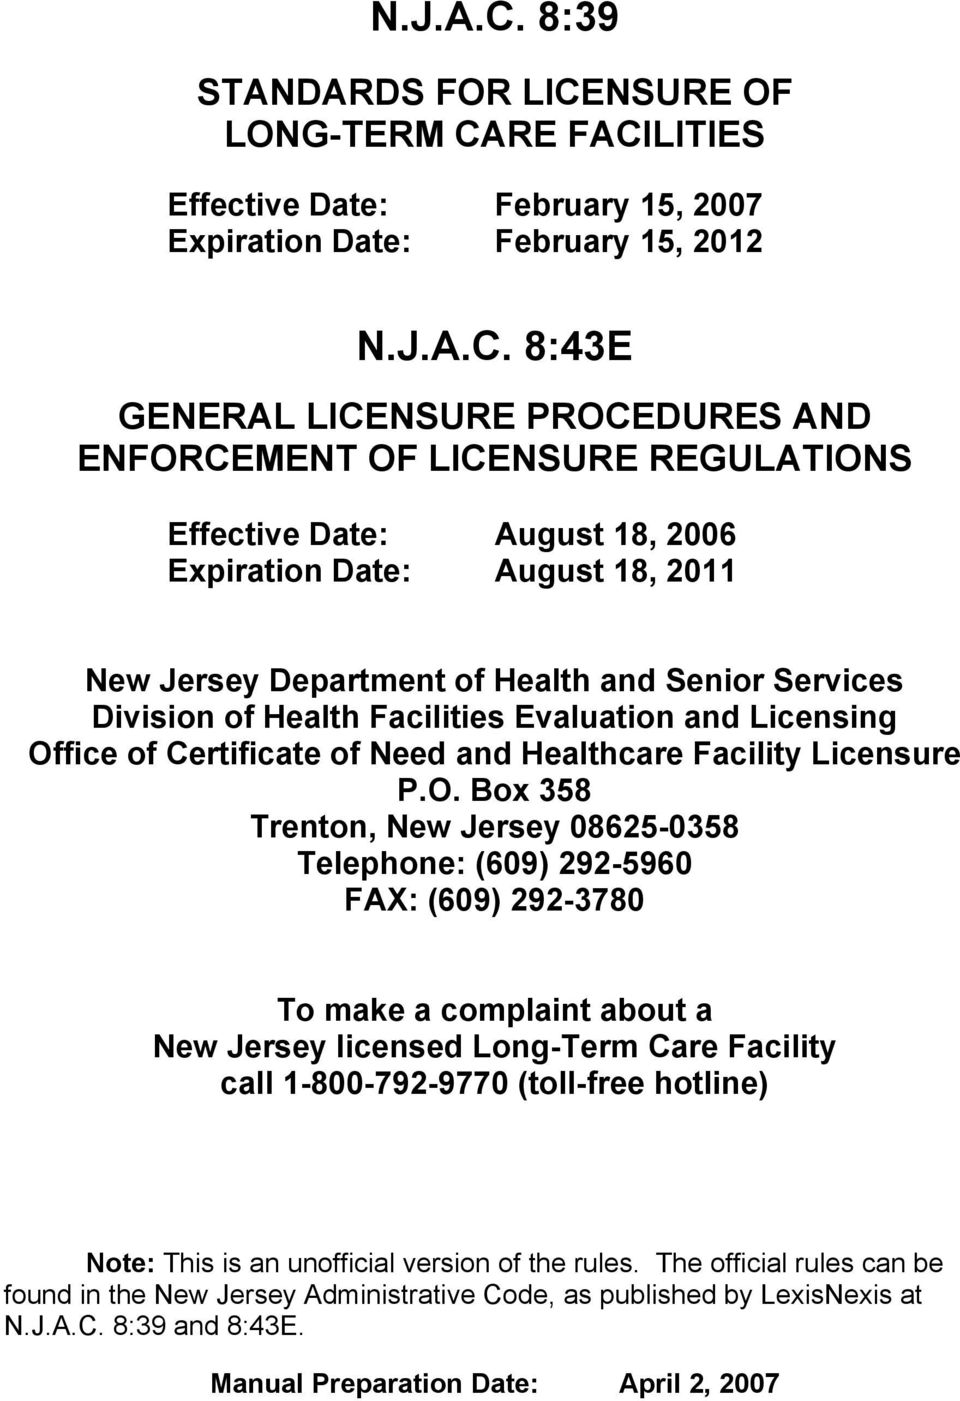 REGULATIONS Effective Date: August 18, 2006 Expiration Date: August 18, 2011 New Jersey Department of Health and Senior Services Division of Health Facilities Evaluation and Licensing Office of